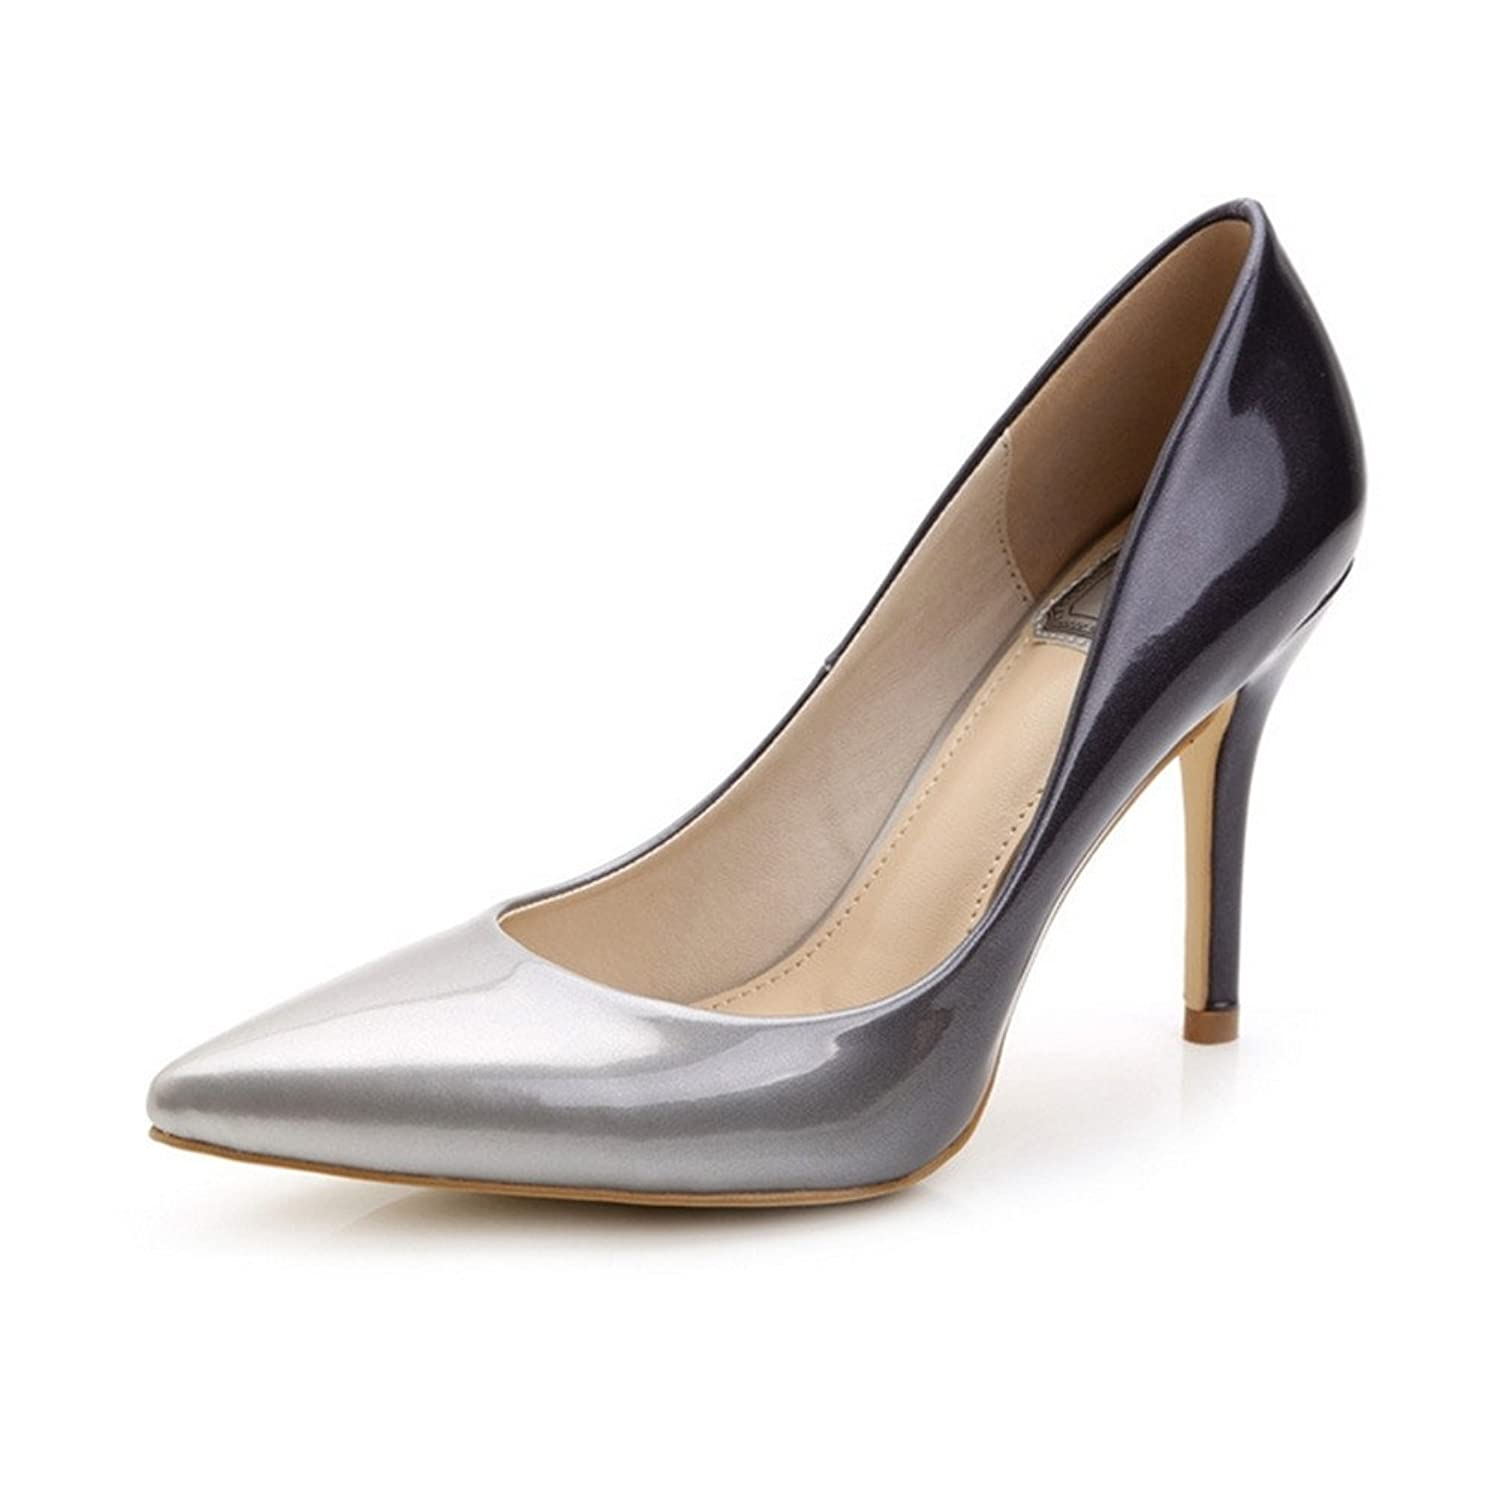 Women's Pointy Toe Gradients High Heel Shoes Dress Pumps